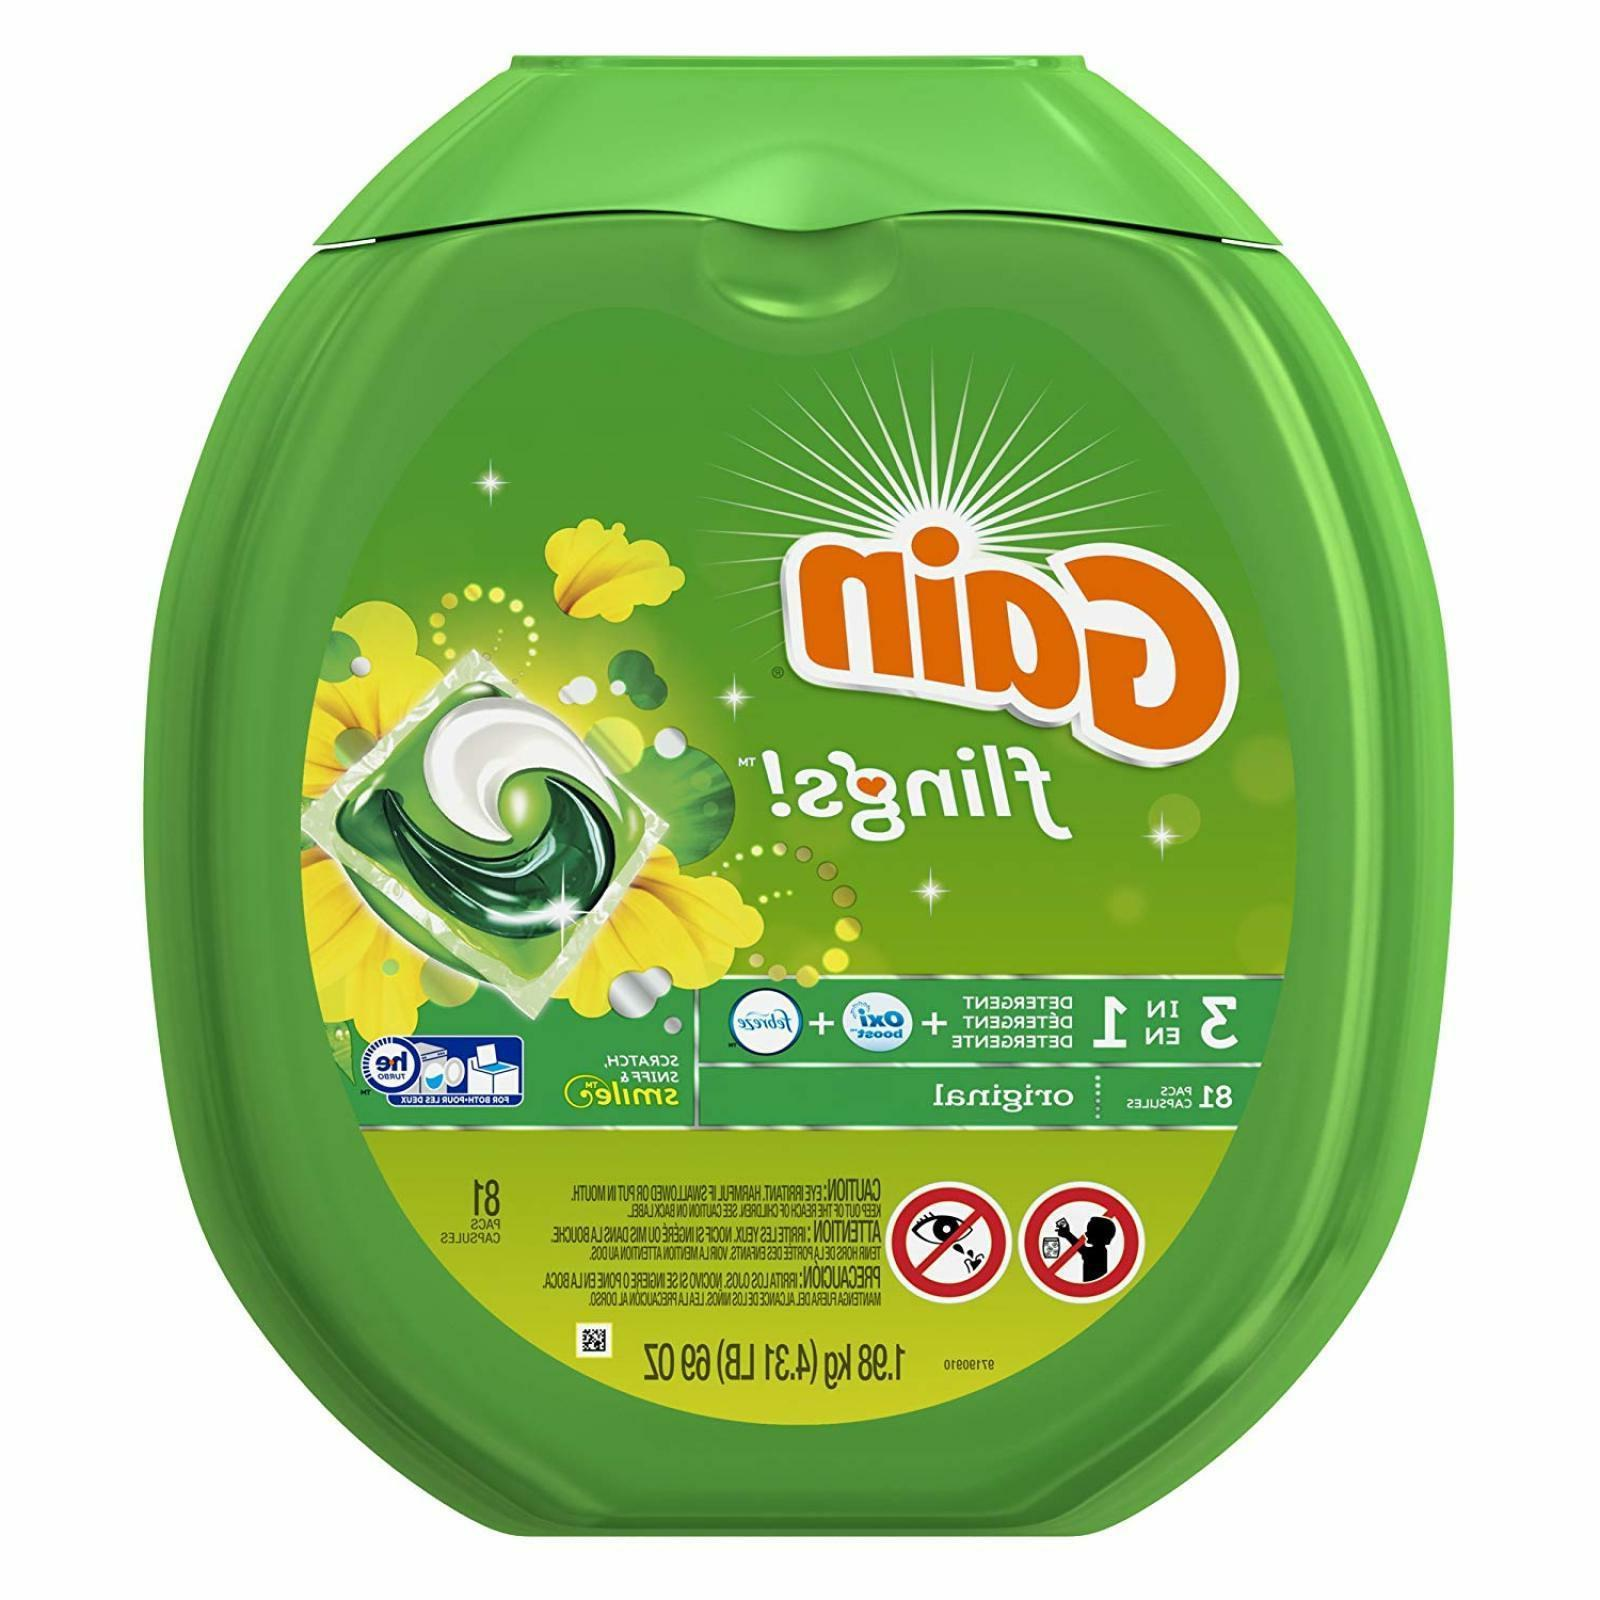 Gain Flings Original Laundry Detergent Pacs Household Cleani